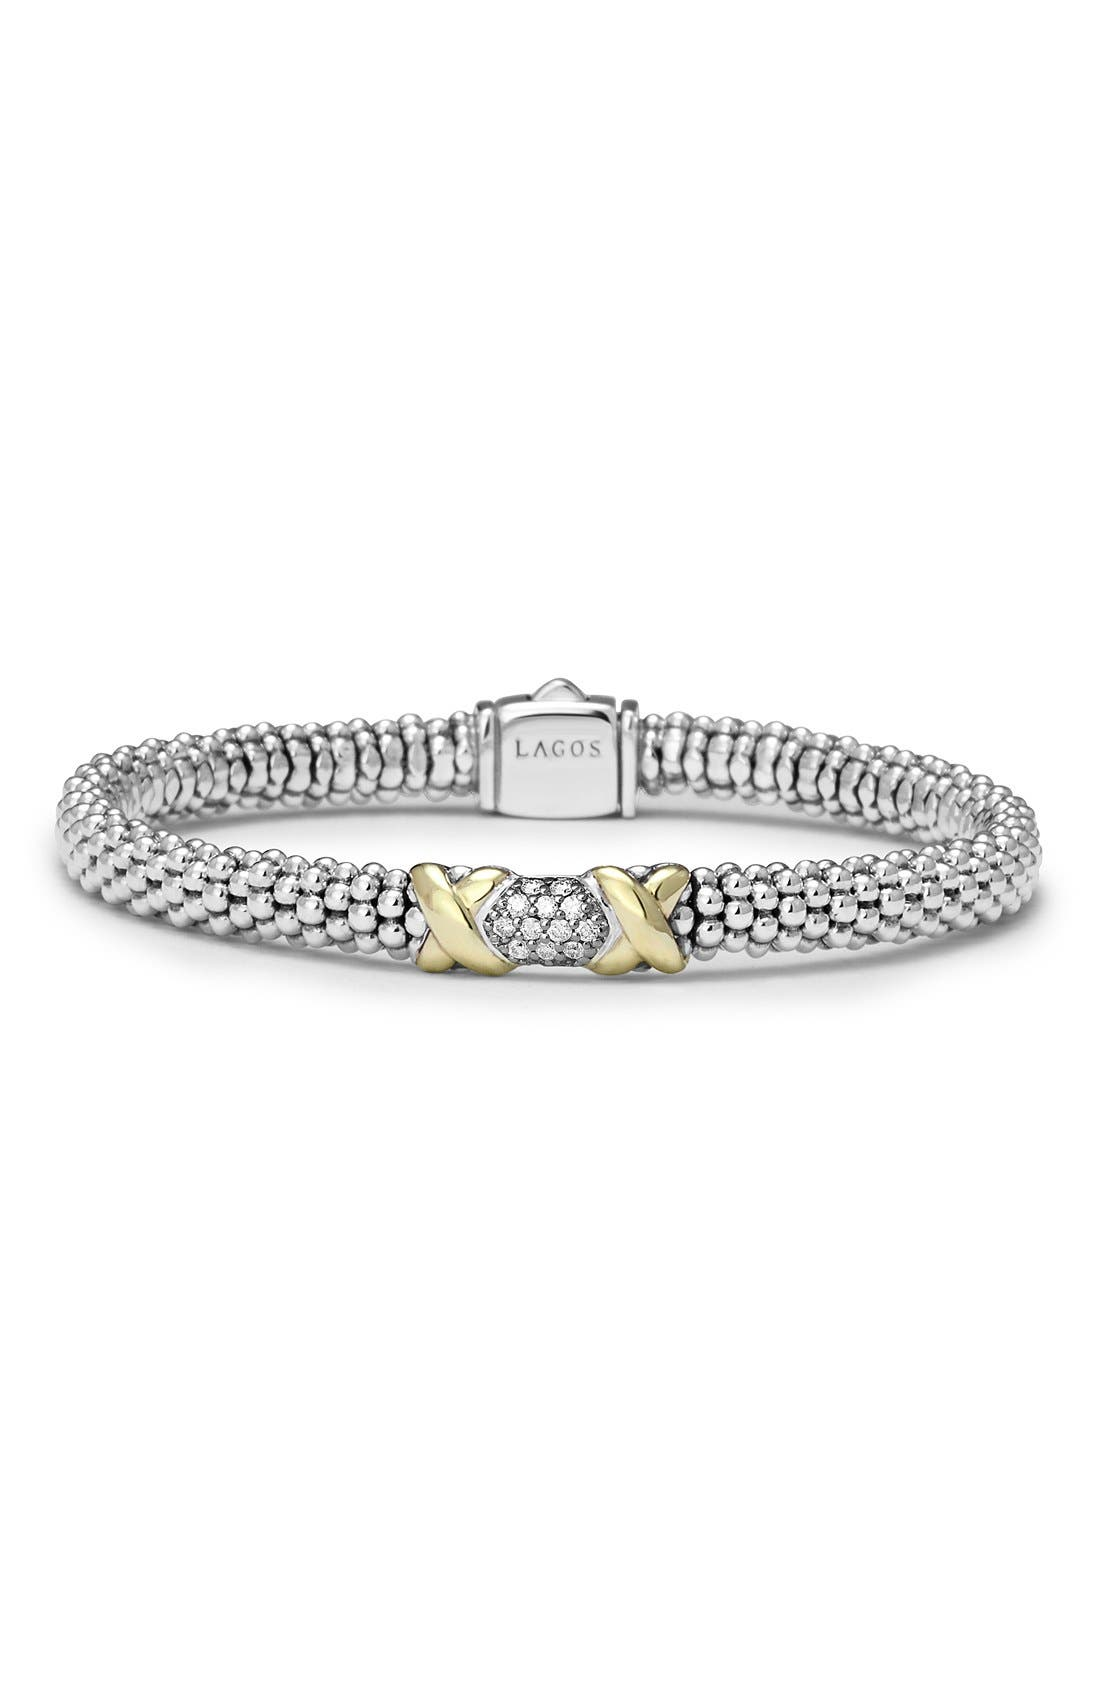 Main Image - LAGOS 'Diamond Lux' Diamond Rope Bracelet